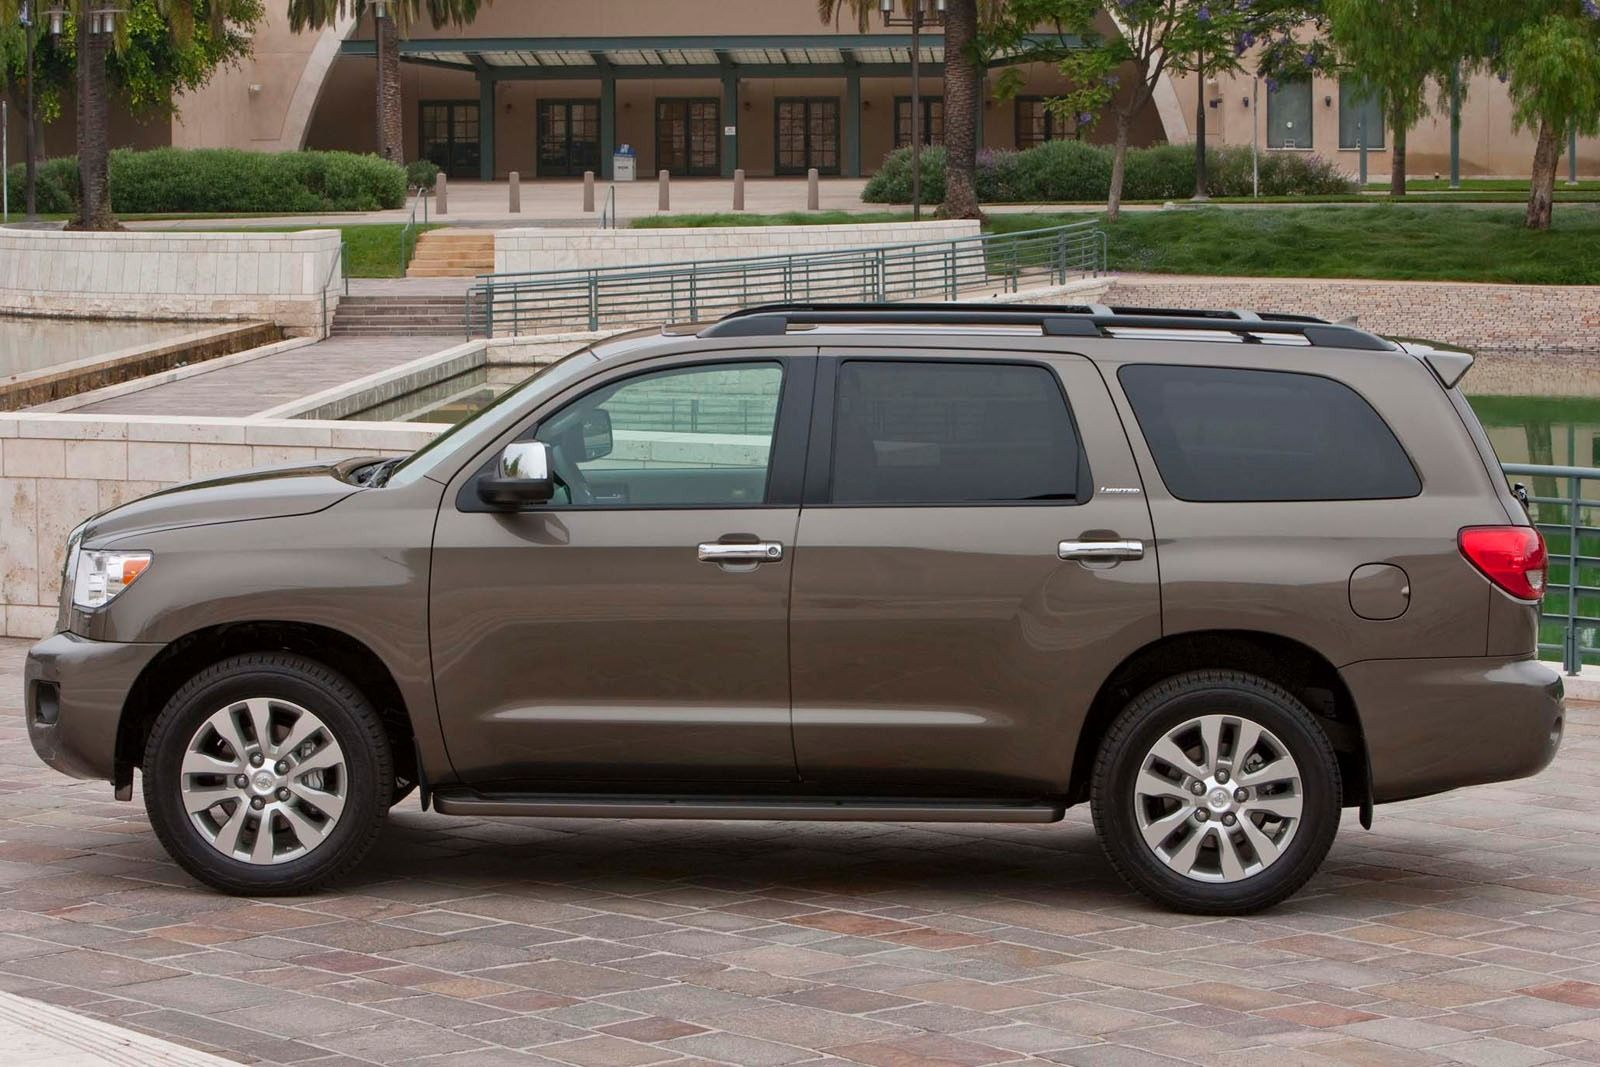 2019 Toyota Sequoia photo - 1